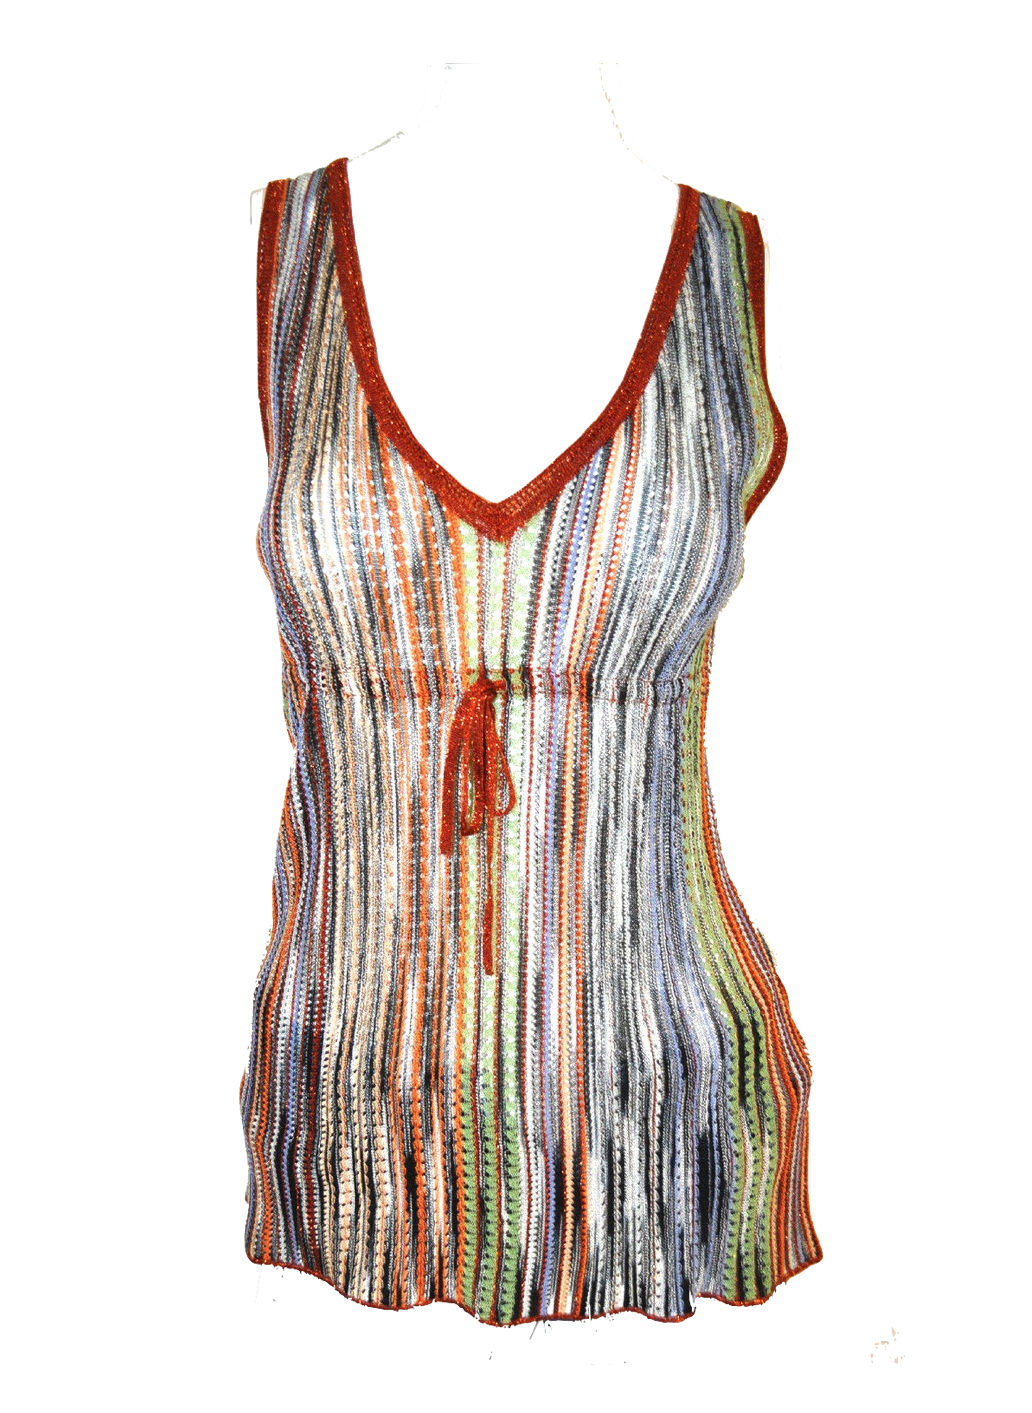 Sleeveless Knit Metallic Top